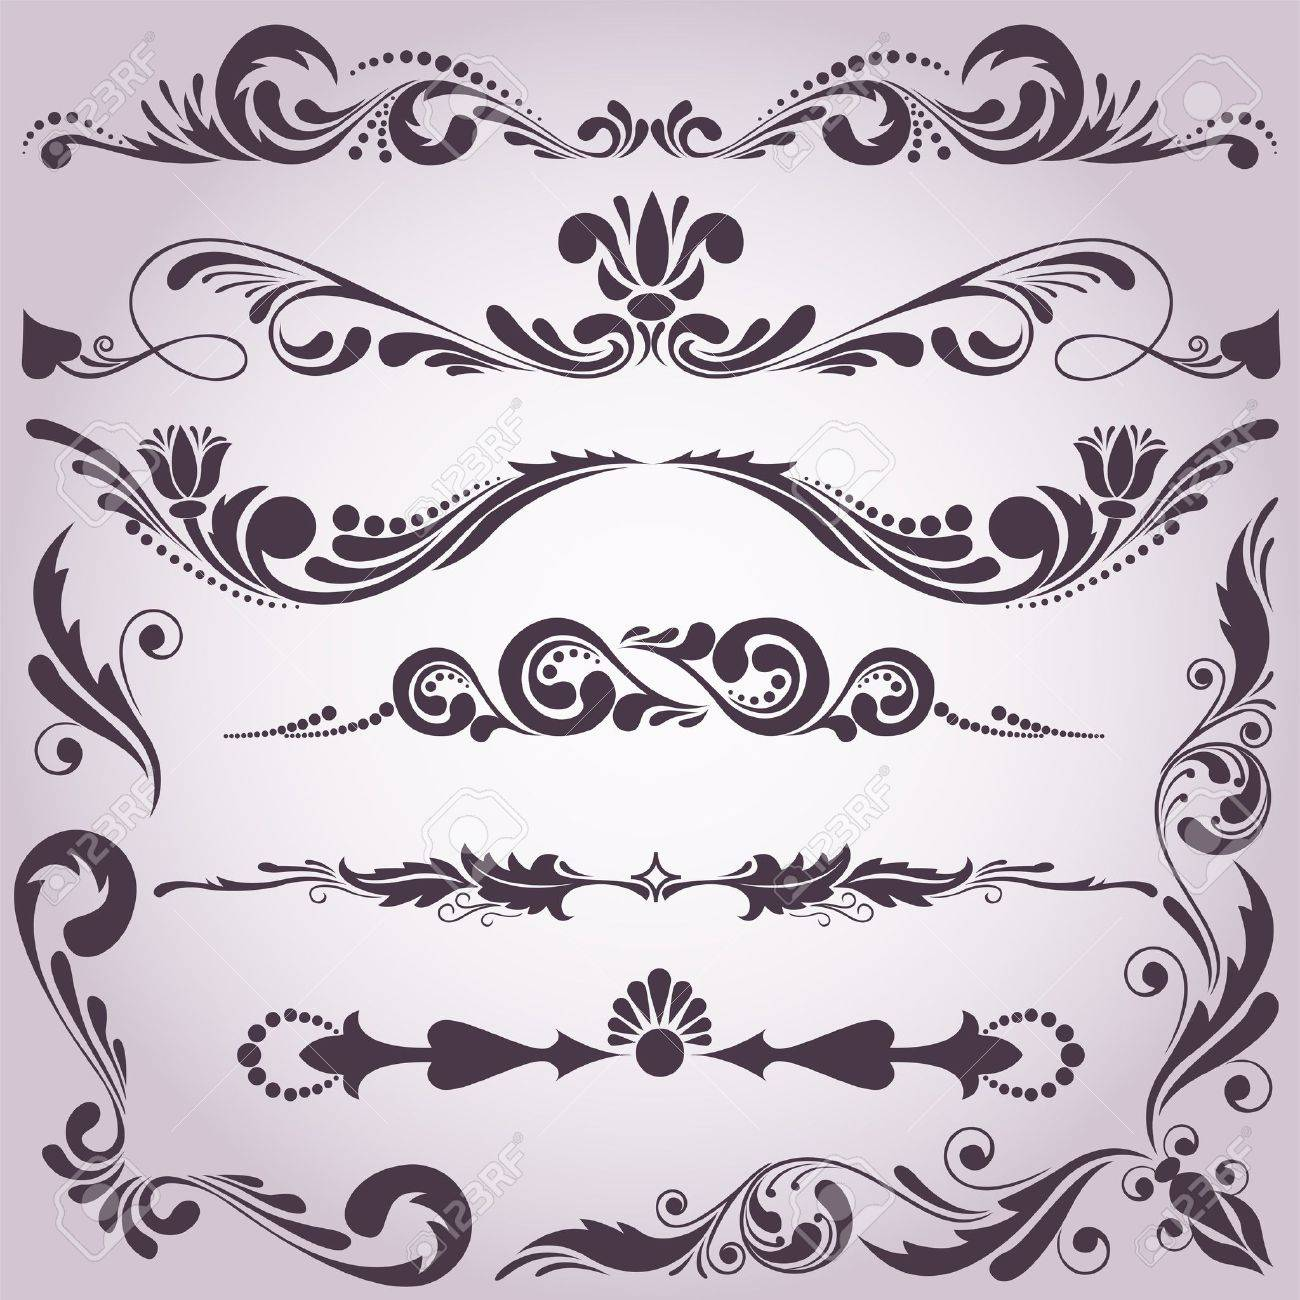 decorative accents stock photos royalty free decorative accents  - decorative accents collection of vintage decorative elements for yourdesign